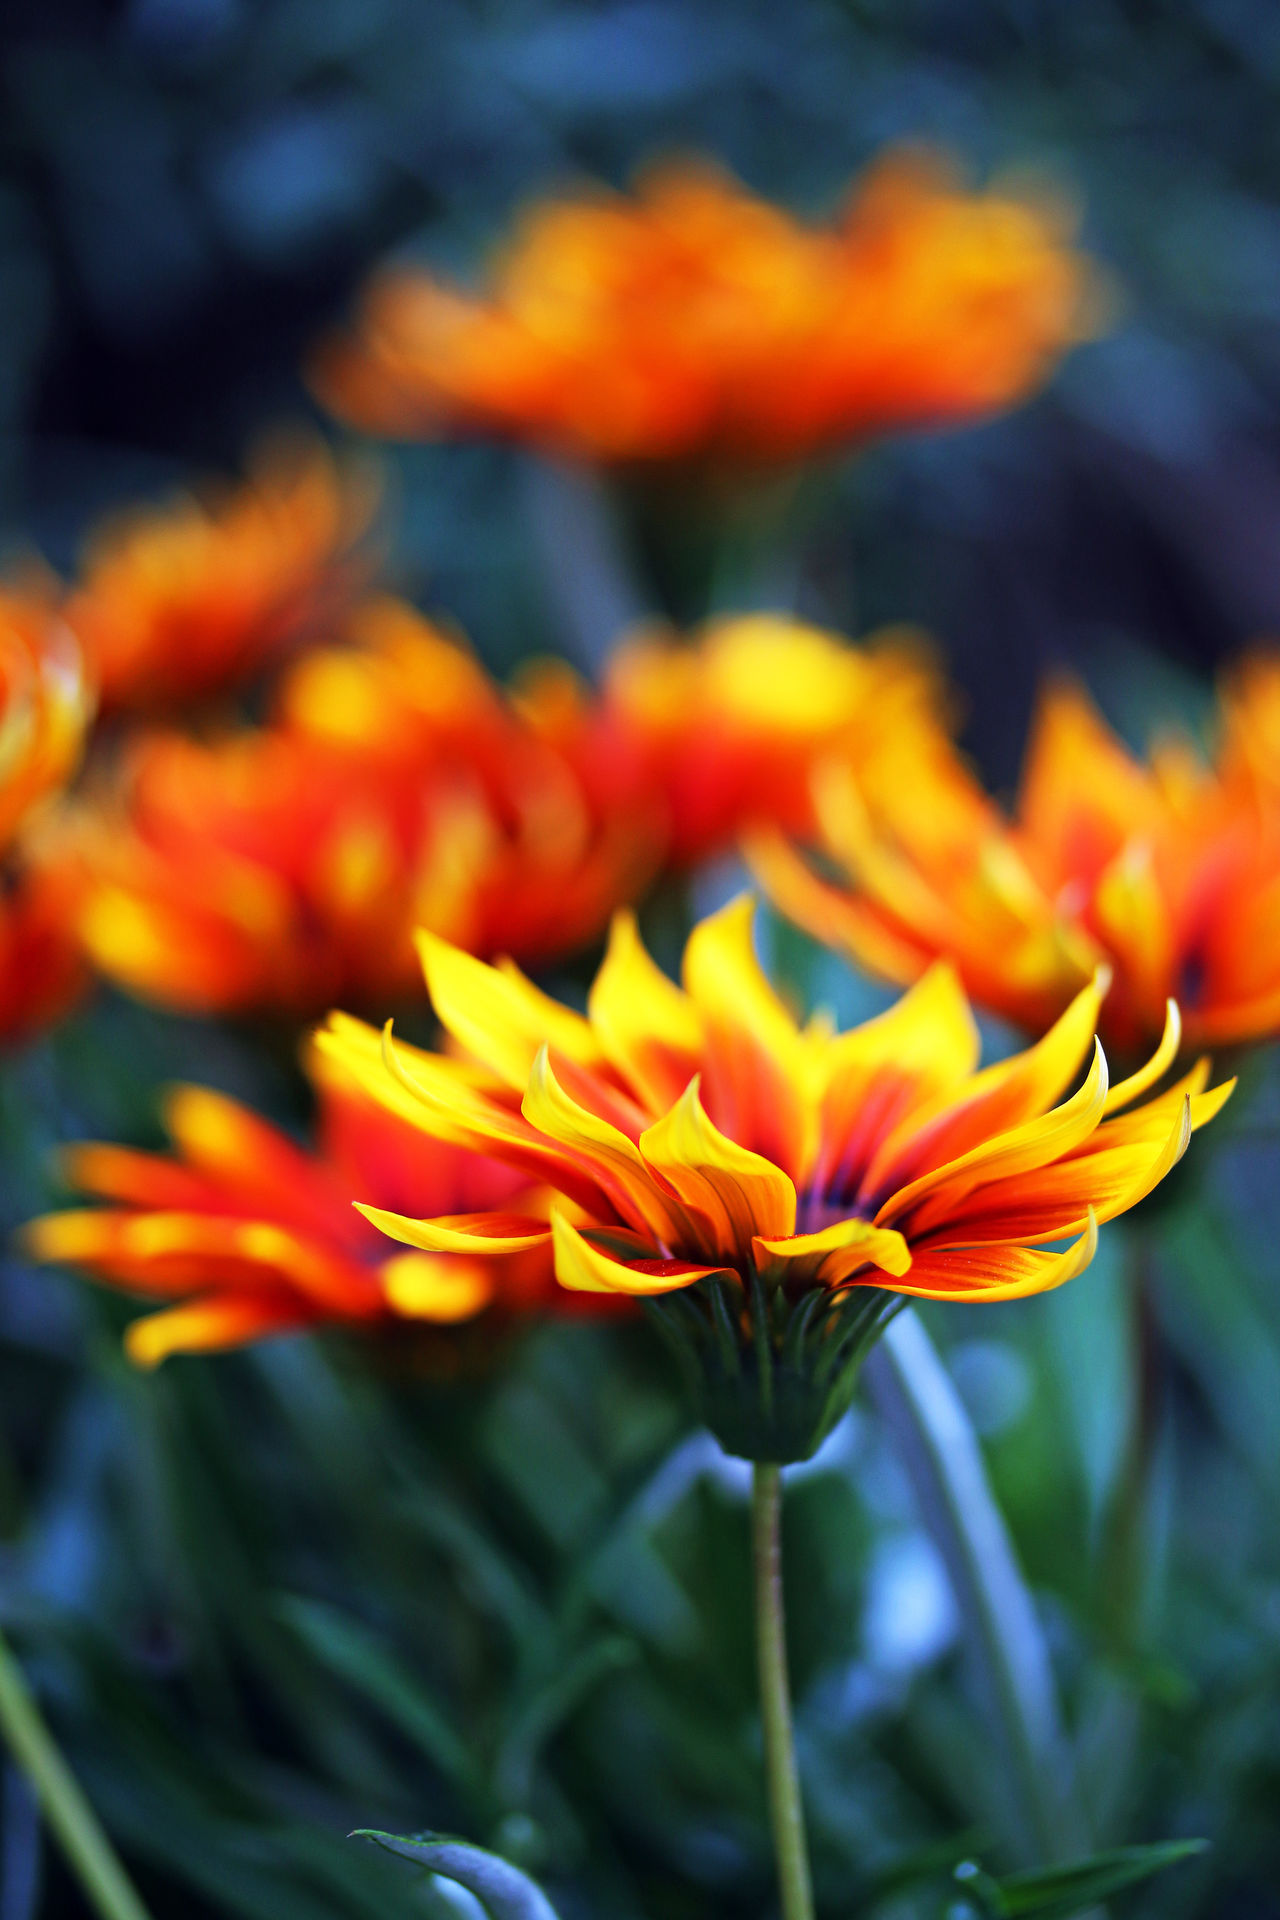 Beauty In Nature Close-up Day Flower Head Freshness Nature No People Orange Color Outdoors Petal Yellow Yellow Red Daisies